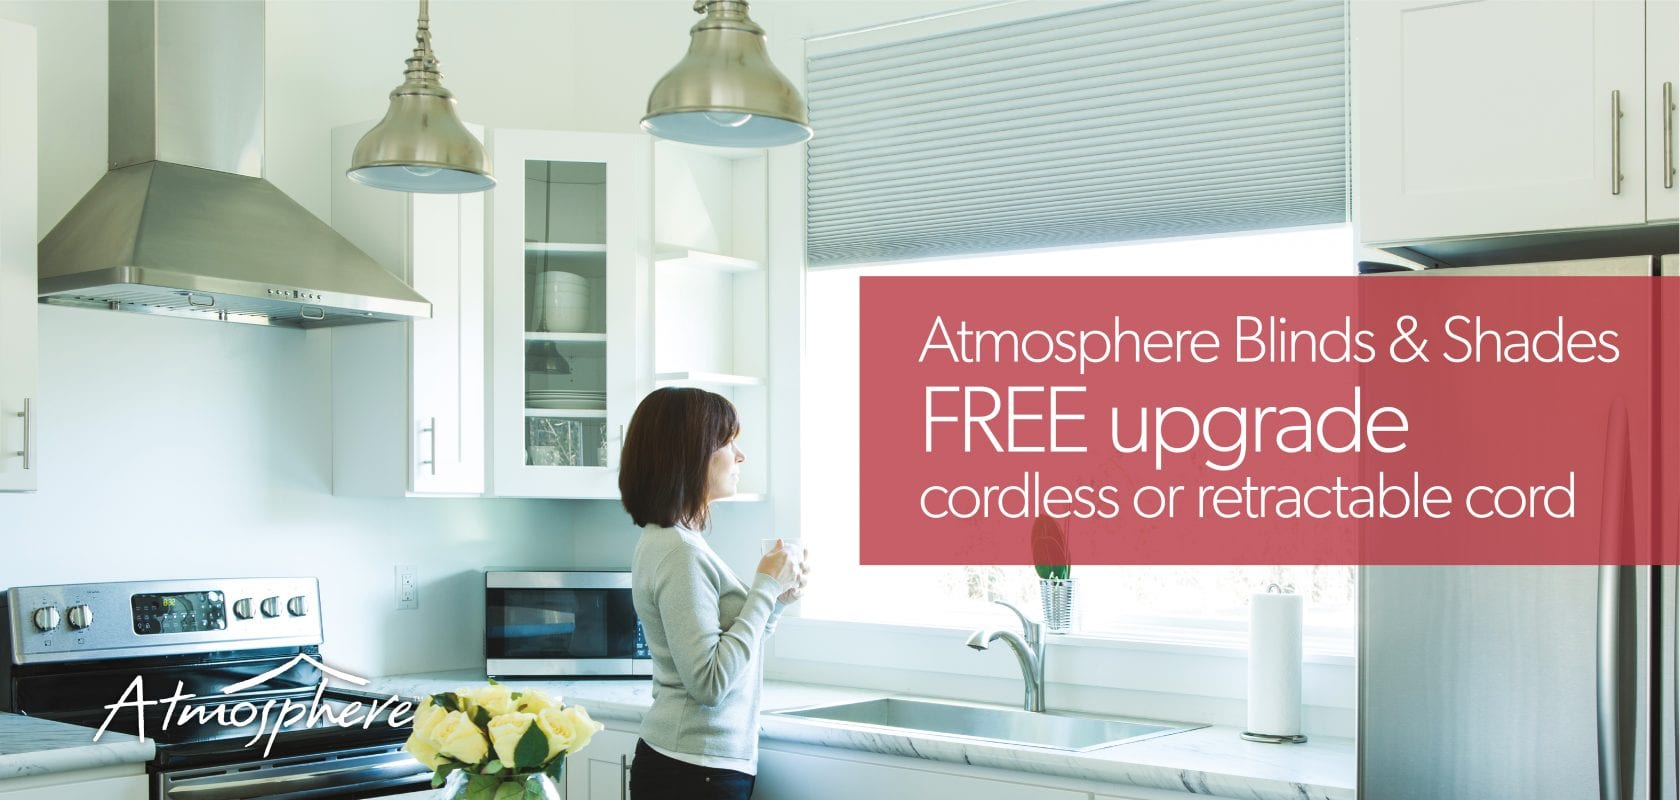 FREE cordless on Atmosphere blinds